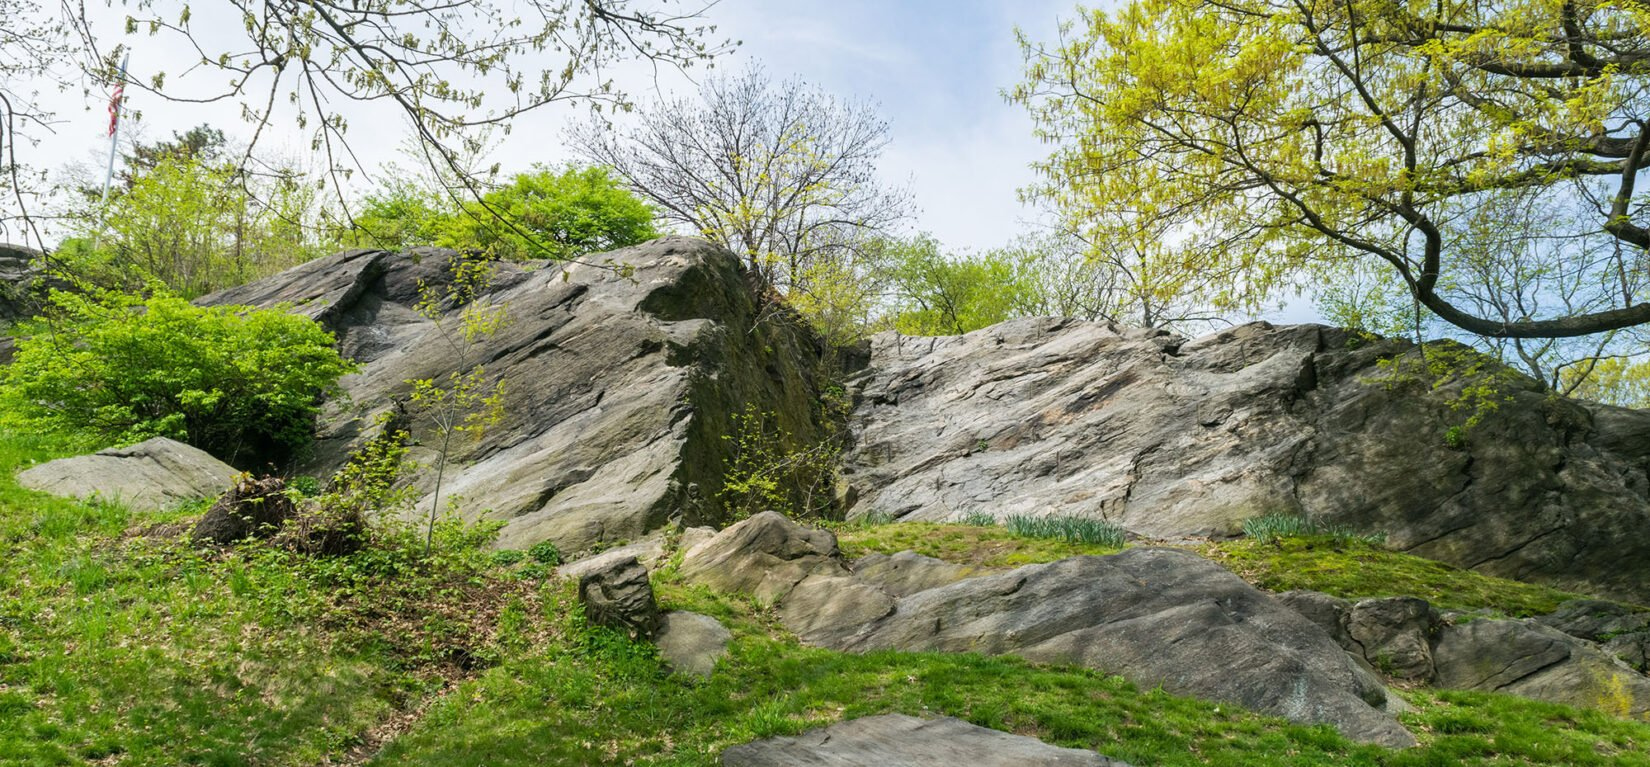 One of the Park's gneiss outcroppings